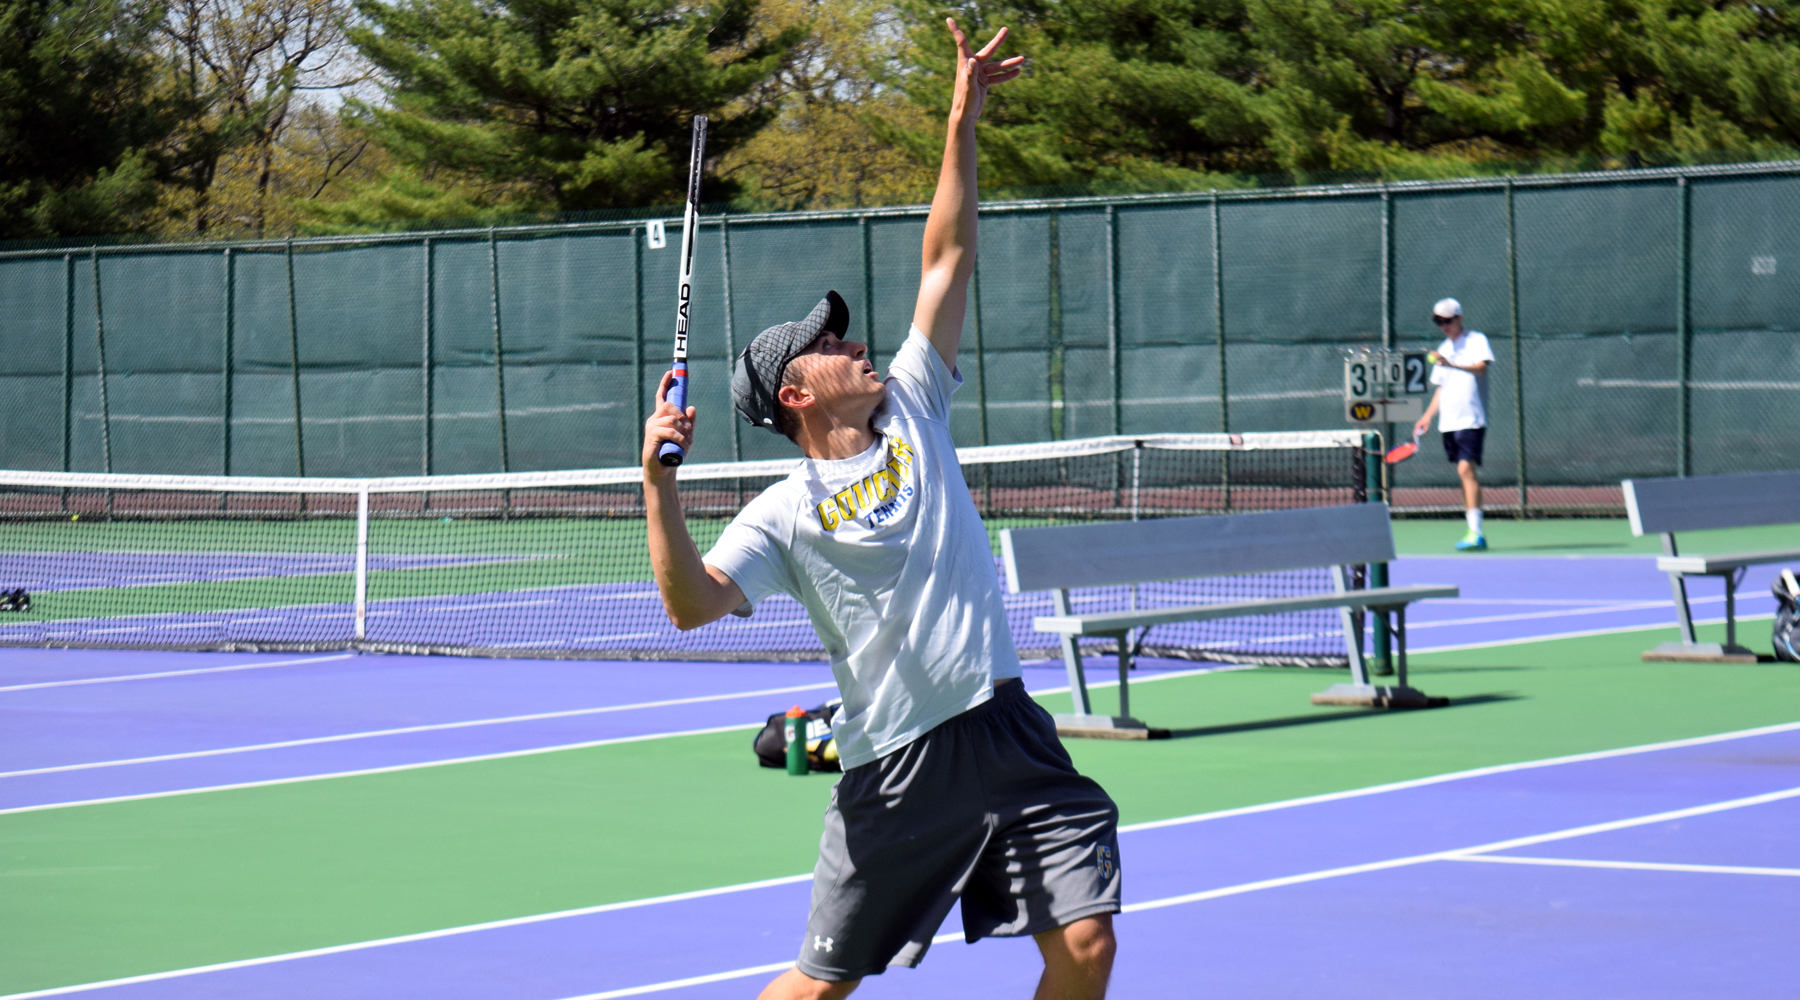 Men's Tennis Rolls Past Messiah, 5-0, in NCAA Championship First Round